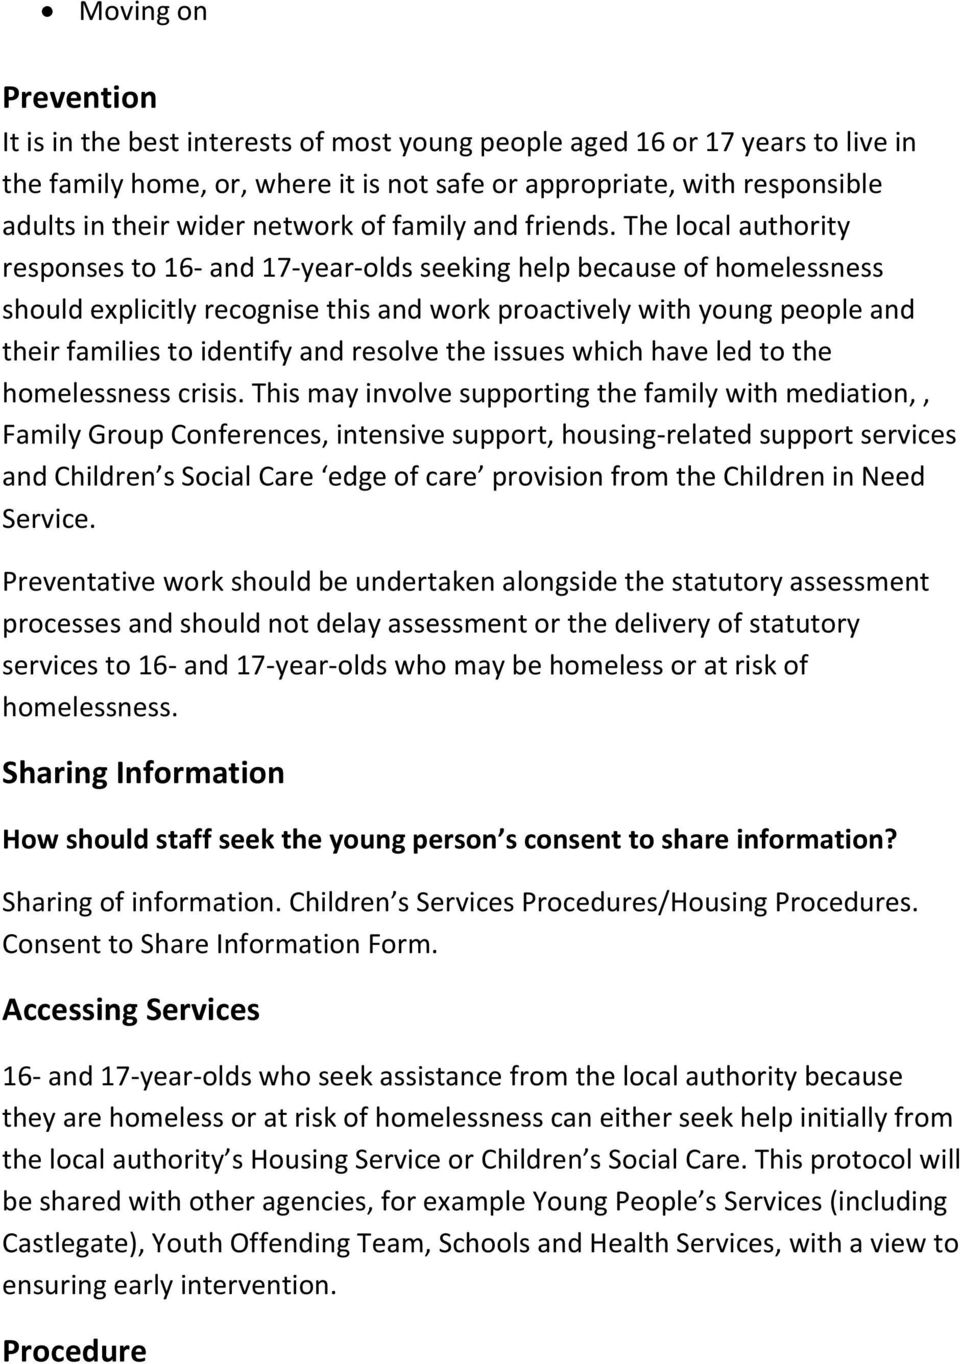 The local authority responses to 16- and 17-year-olds seeking help because of homelessness should explicitly recognise this and work proactively with young people and their families to identify and